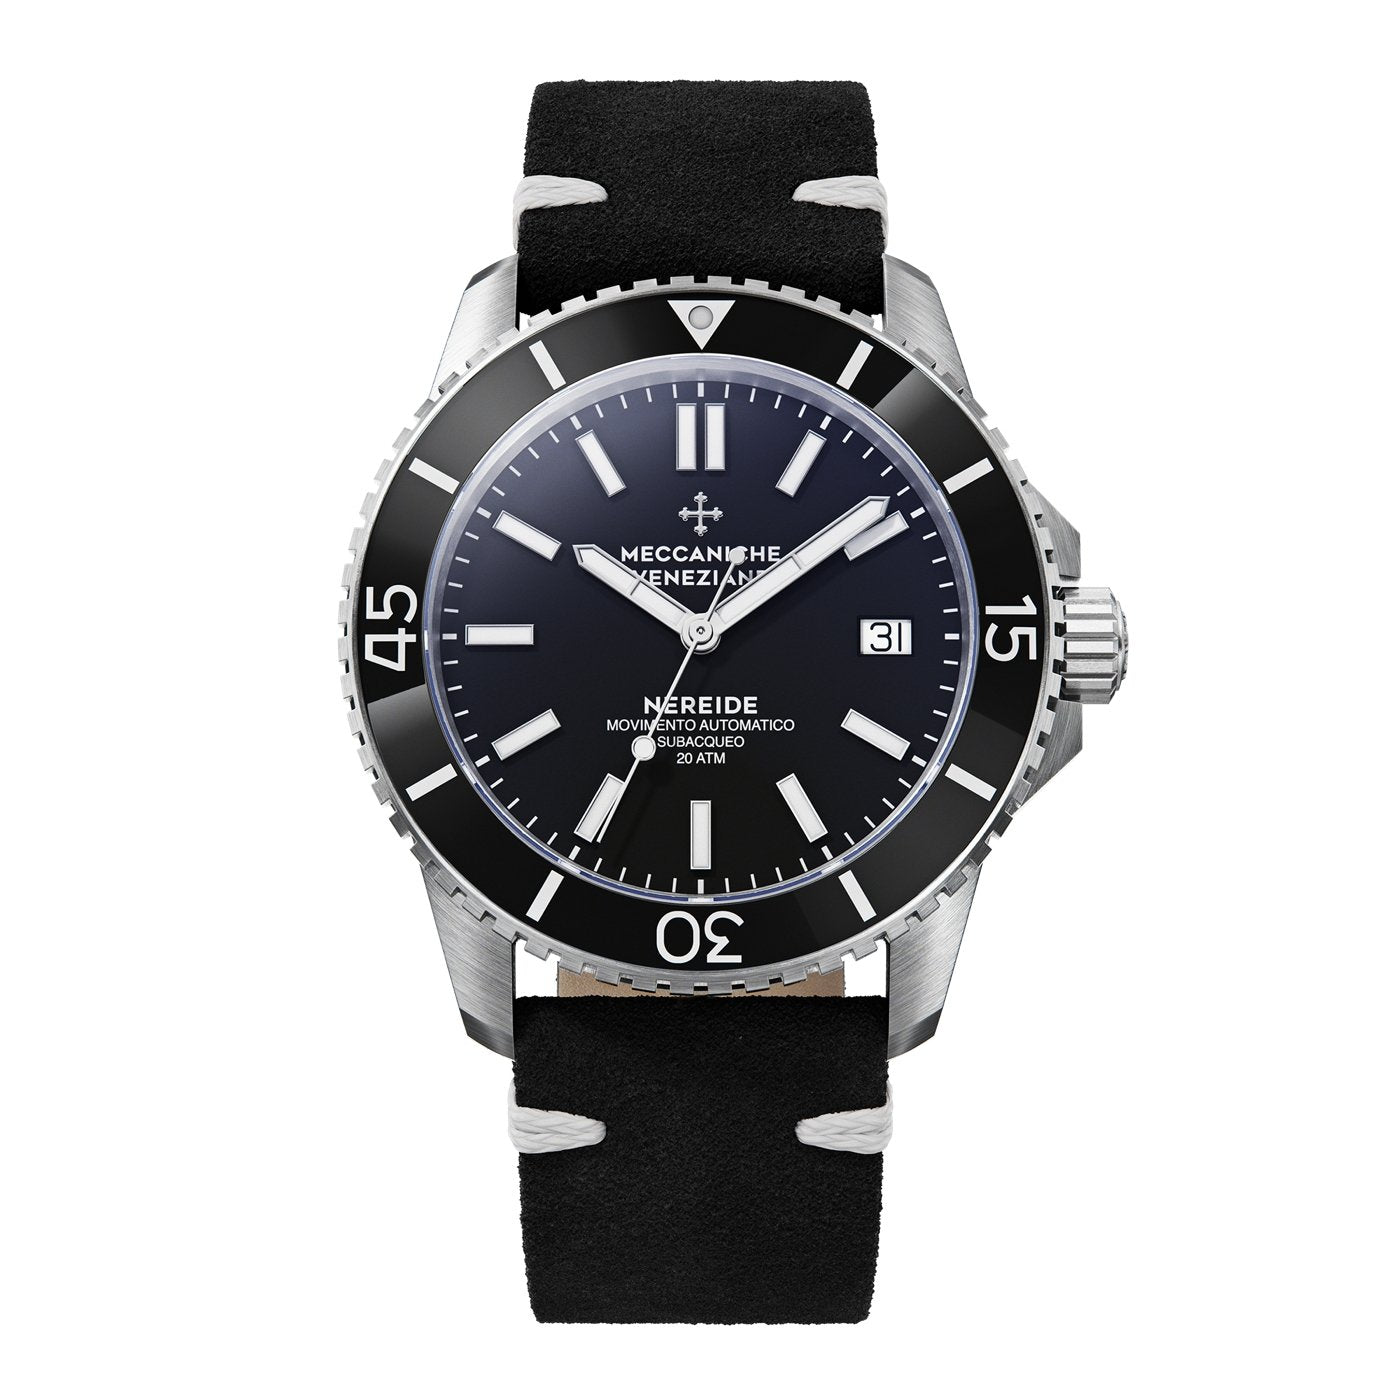 Meccaniche Veneziane Nereide 4.0 Watch Diver - Watches & Crystals